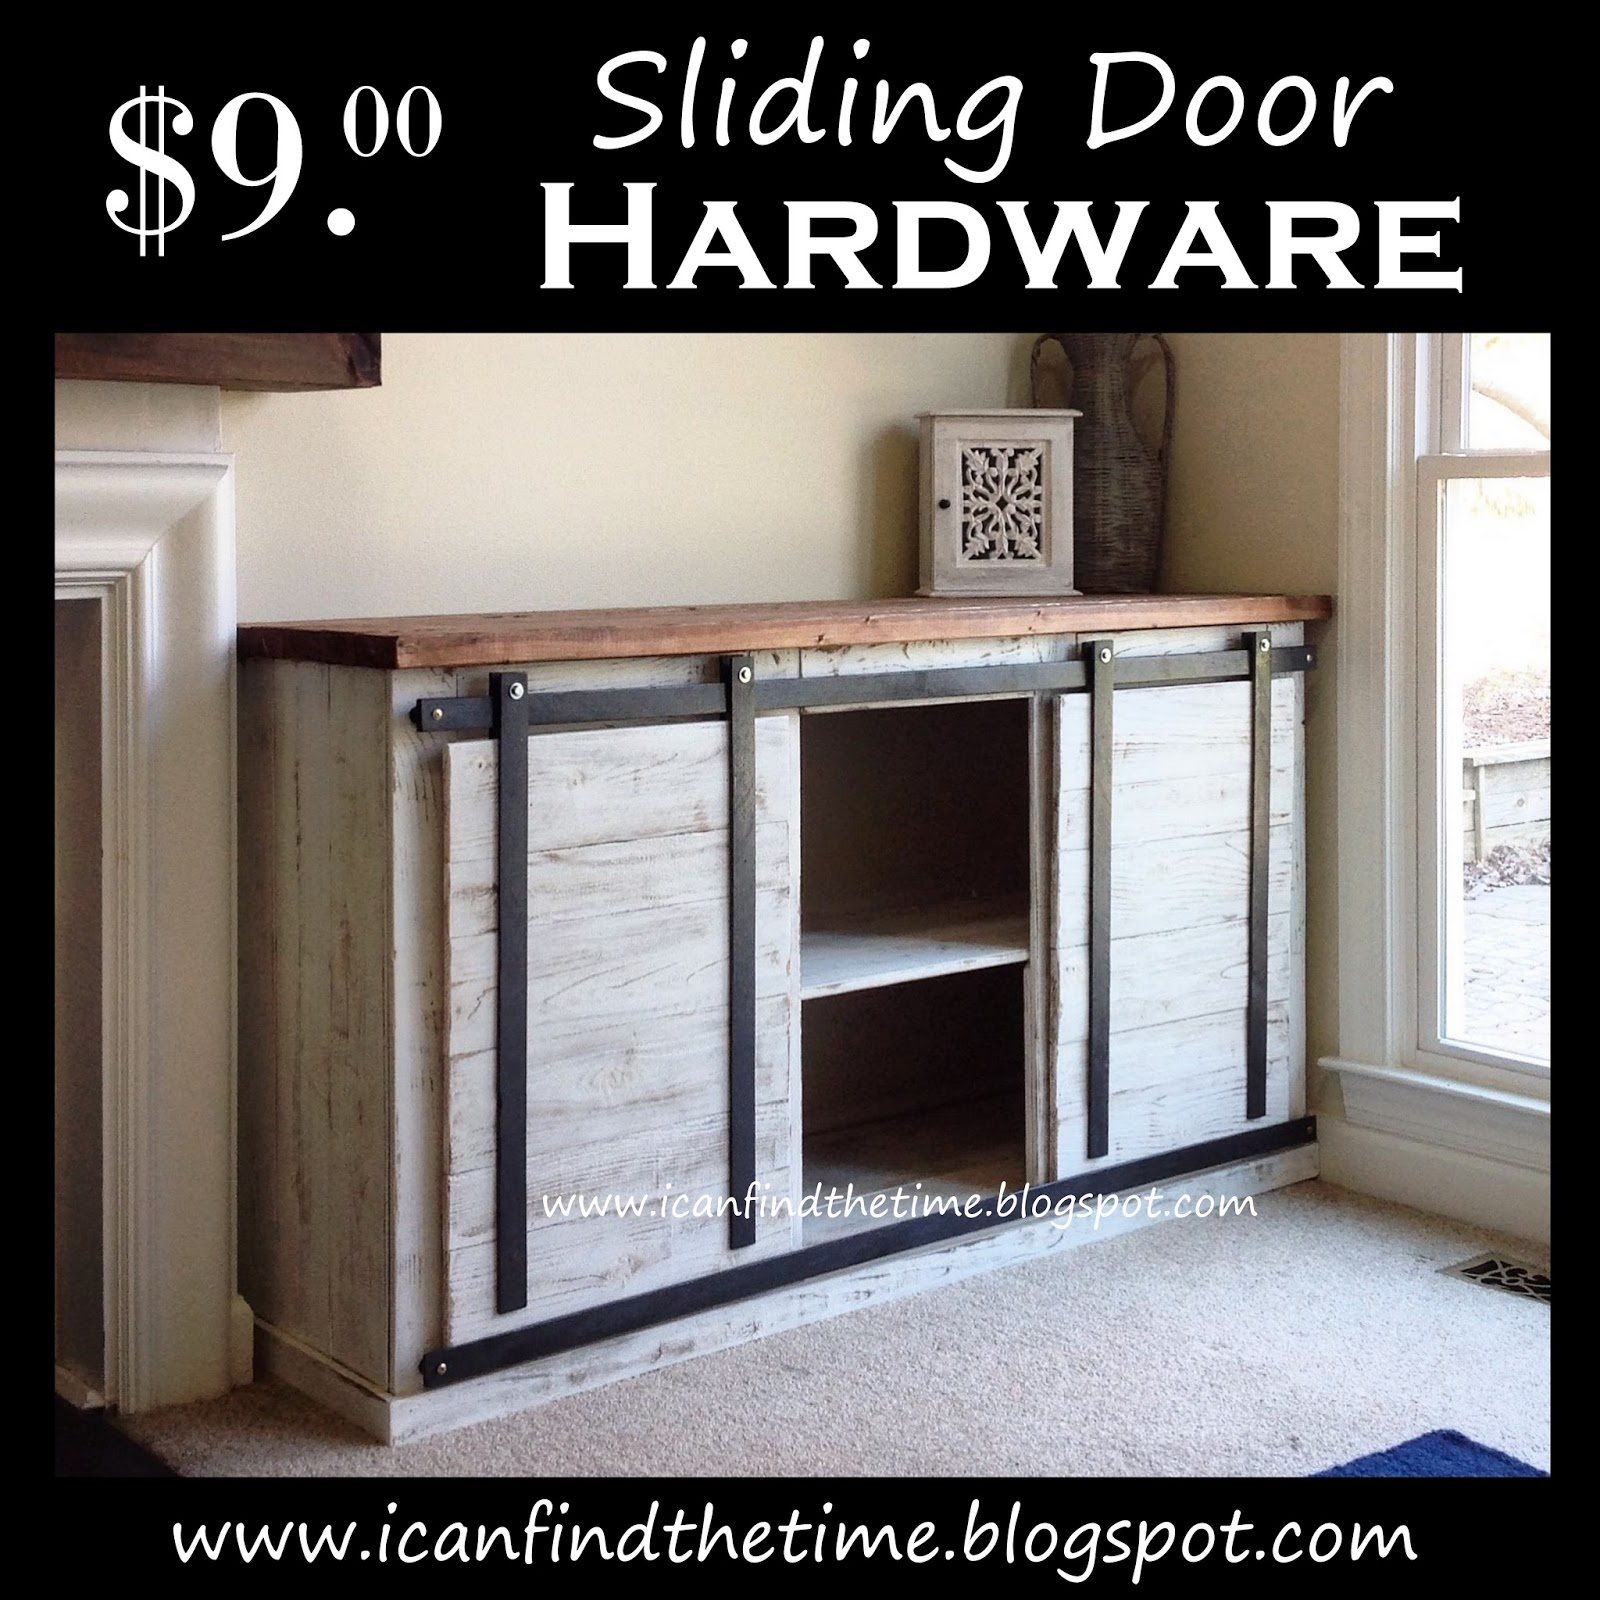 Homemade Sliding Door Closer: A New (Cheaper) Way To Do Sliding Doors On Furniture